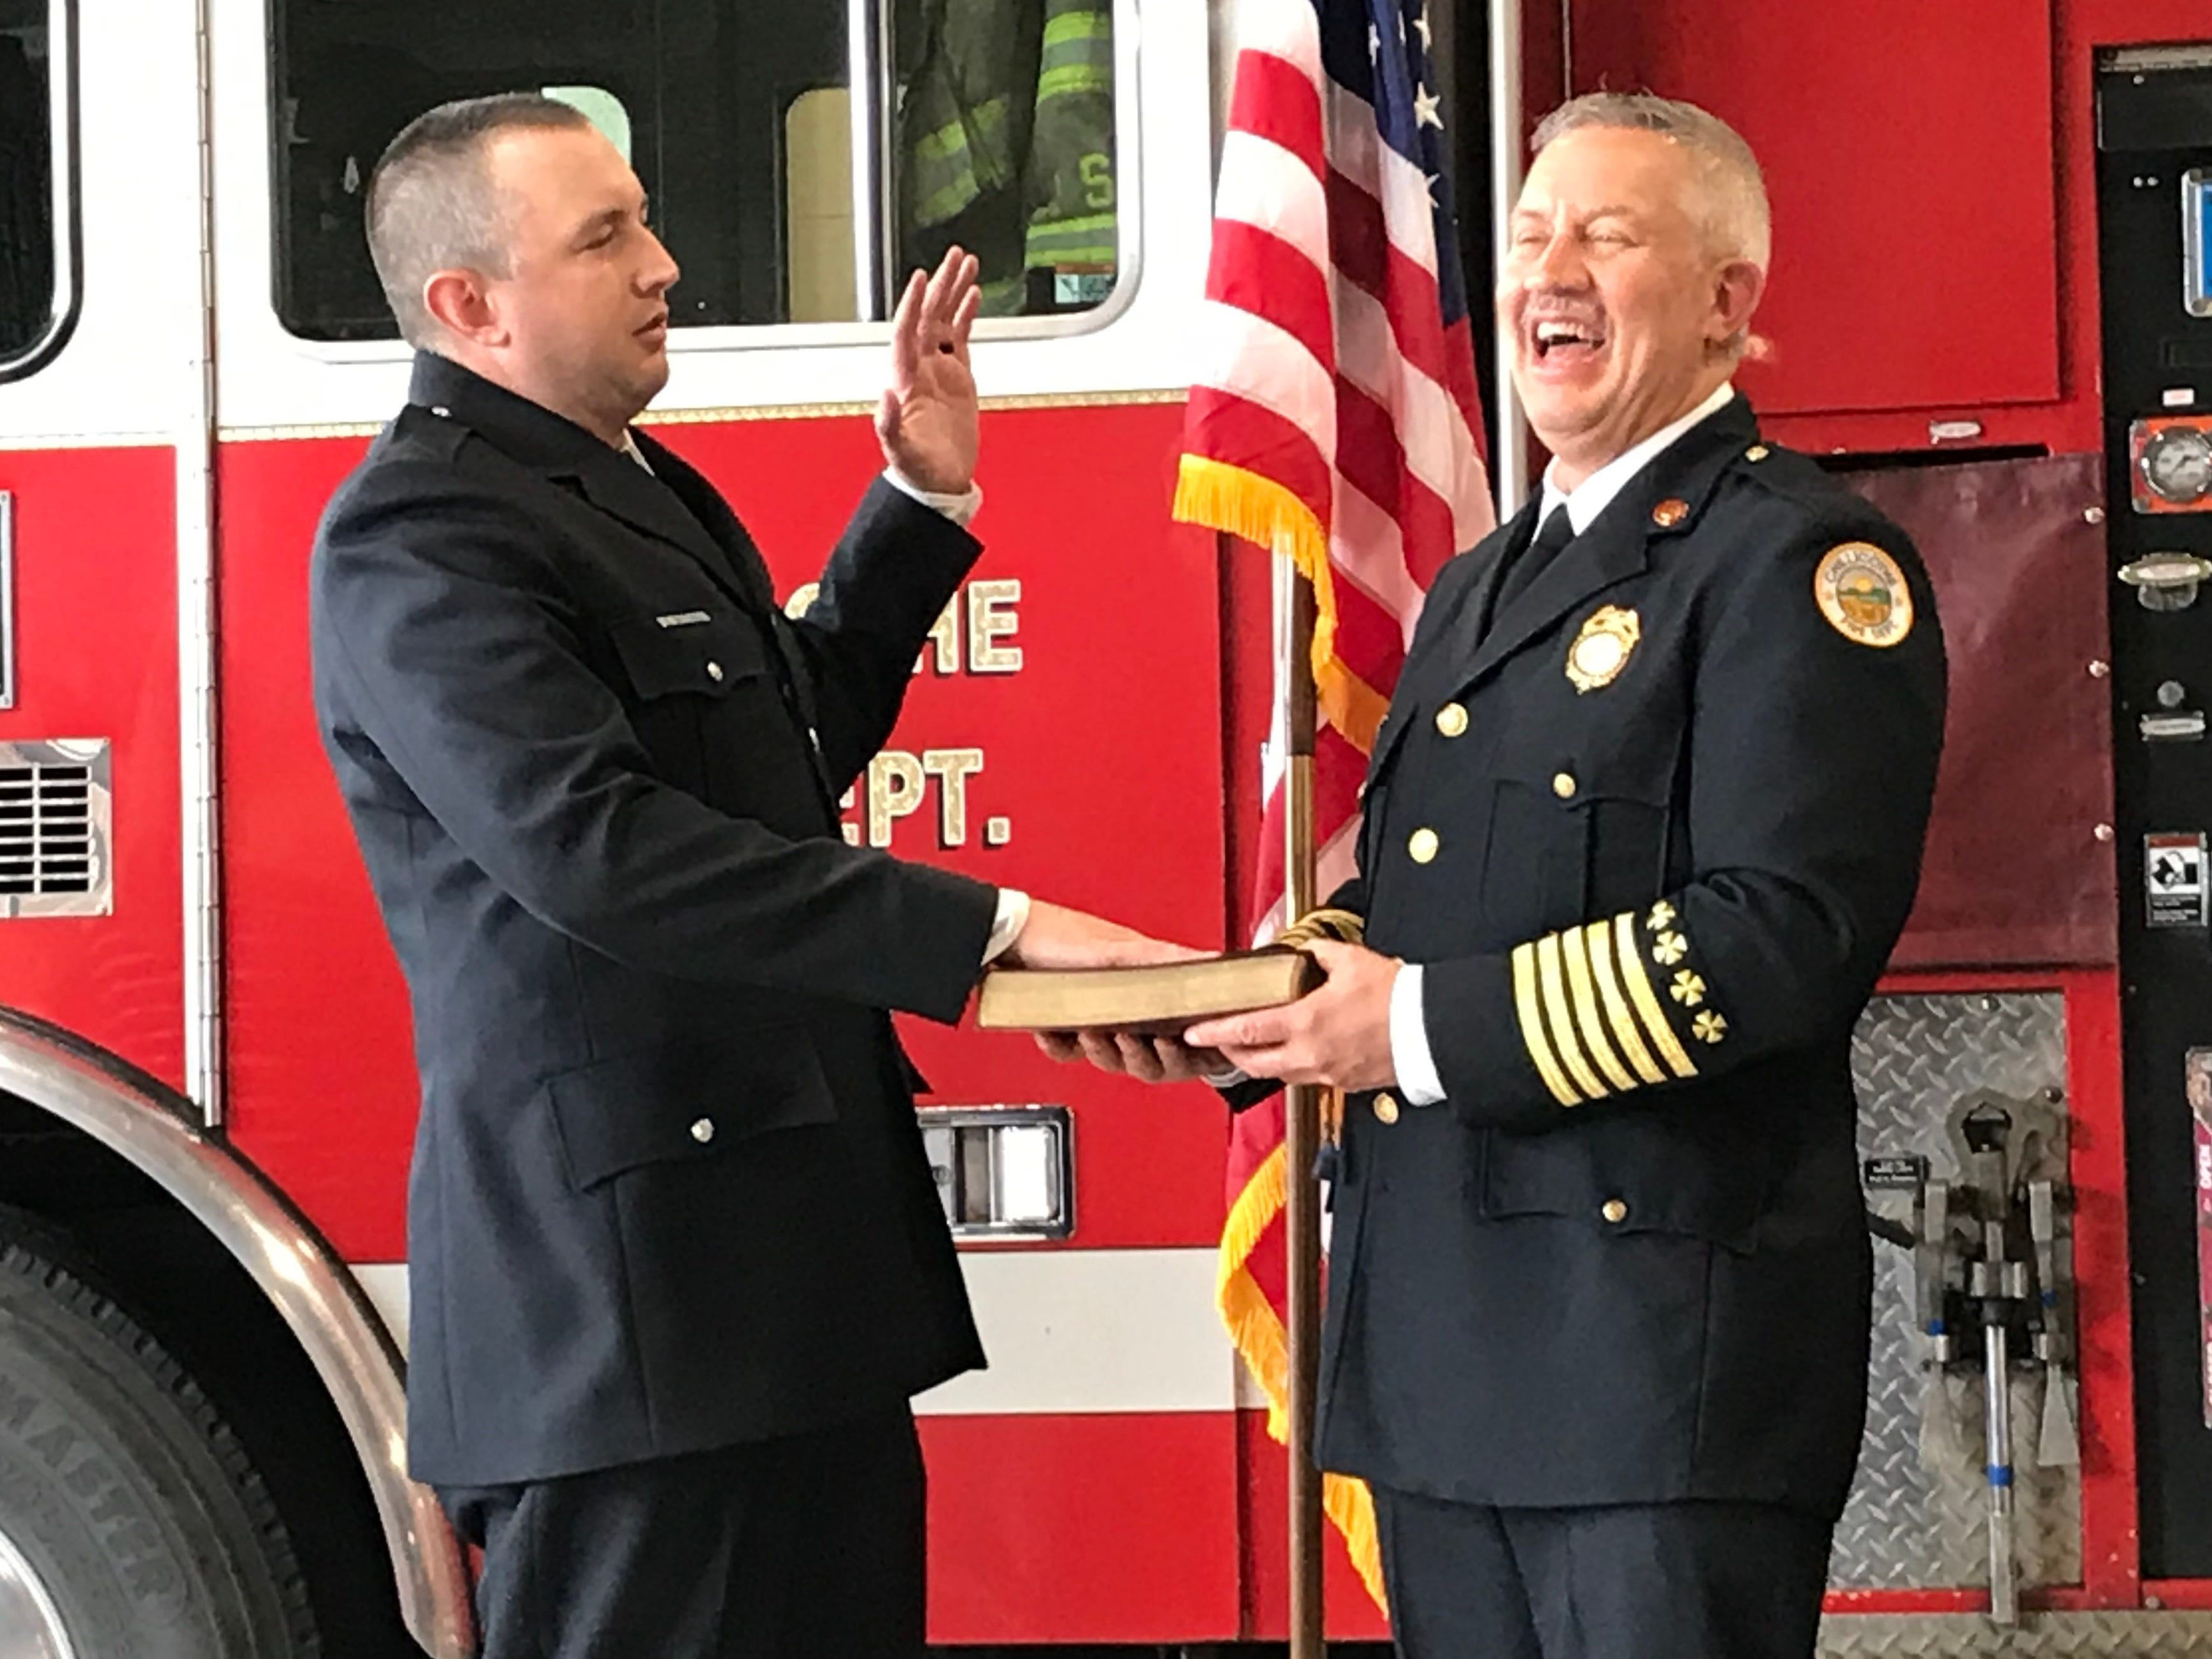 Chillicothe Fire Chief Jeff Creed laughs after Chillicothe Public Safety Director Jeff Carman (not pictured) gives new fire Lt. Nick Mathias a bit too much to repeat at once during Mathias' promotional swearing in on Friday, April 26, 2019.